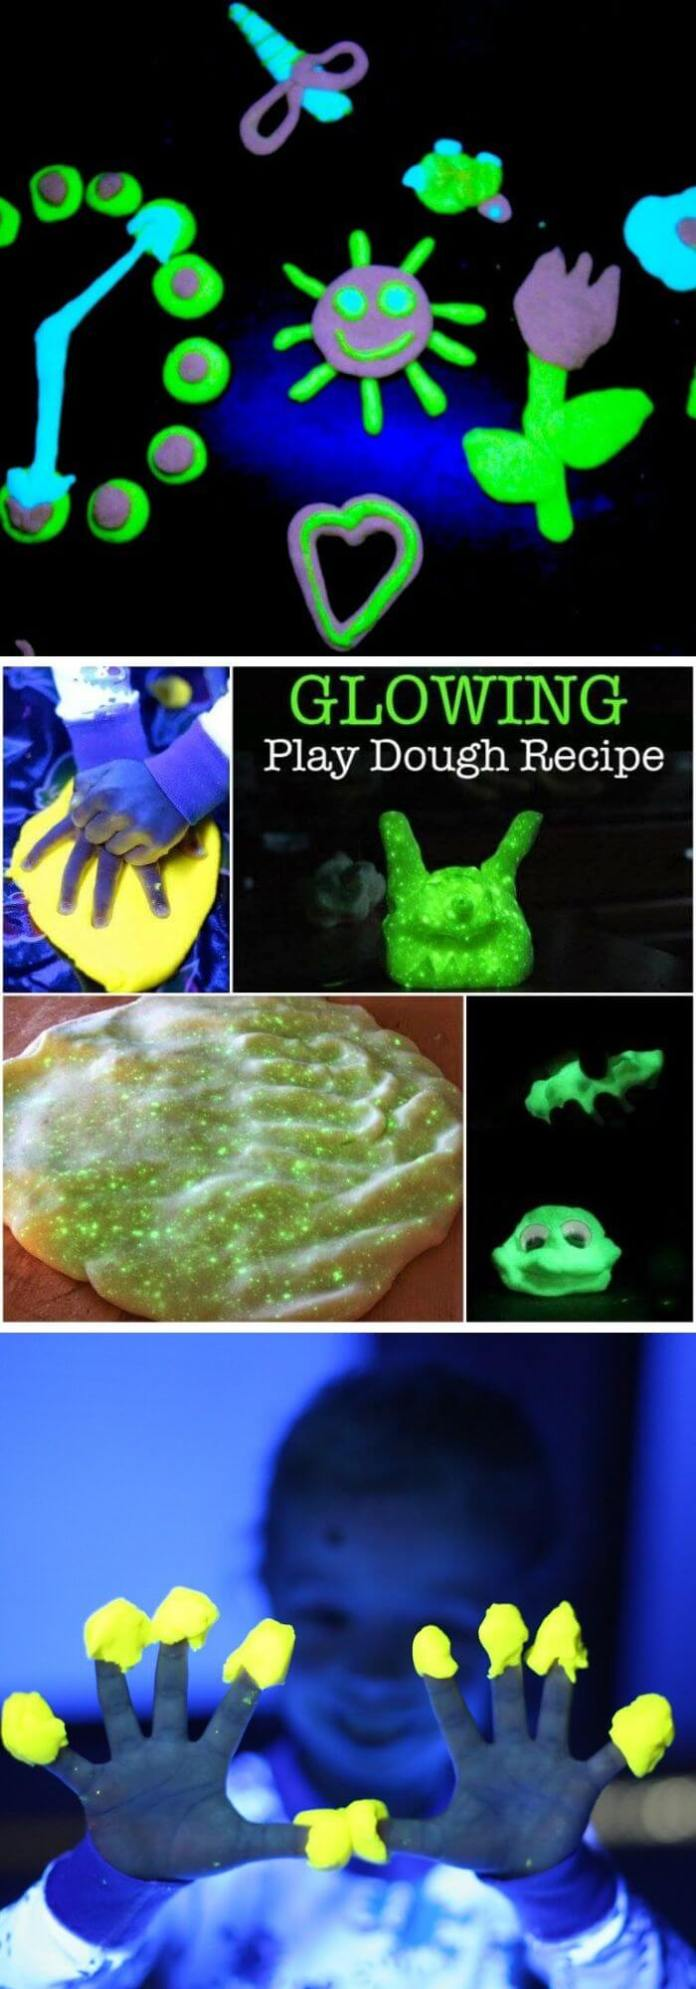 Surprise your kids with shinny playdough